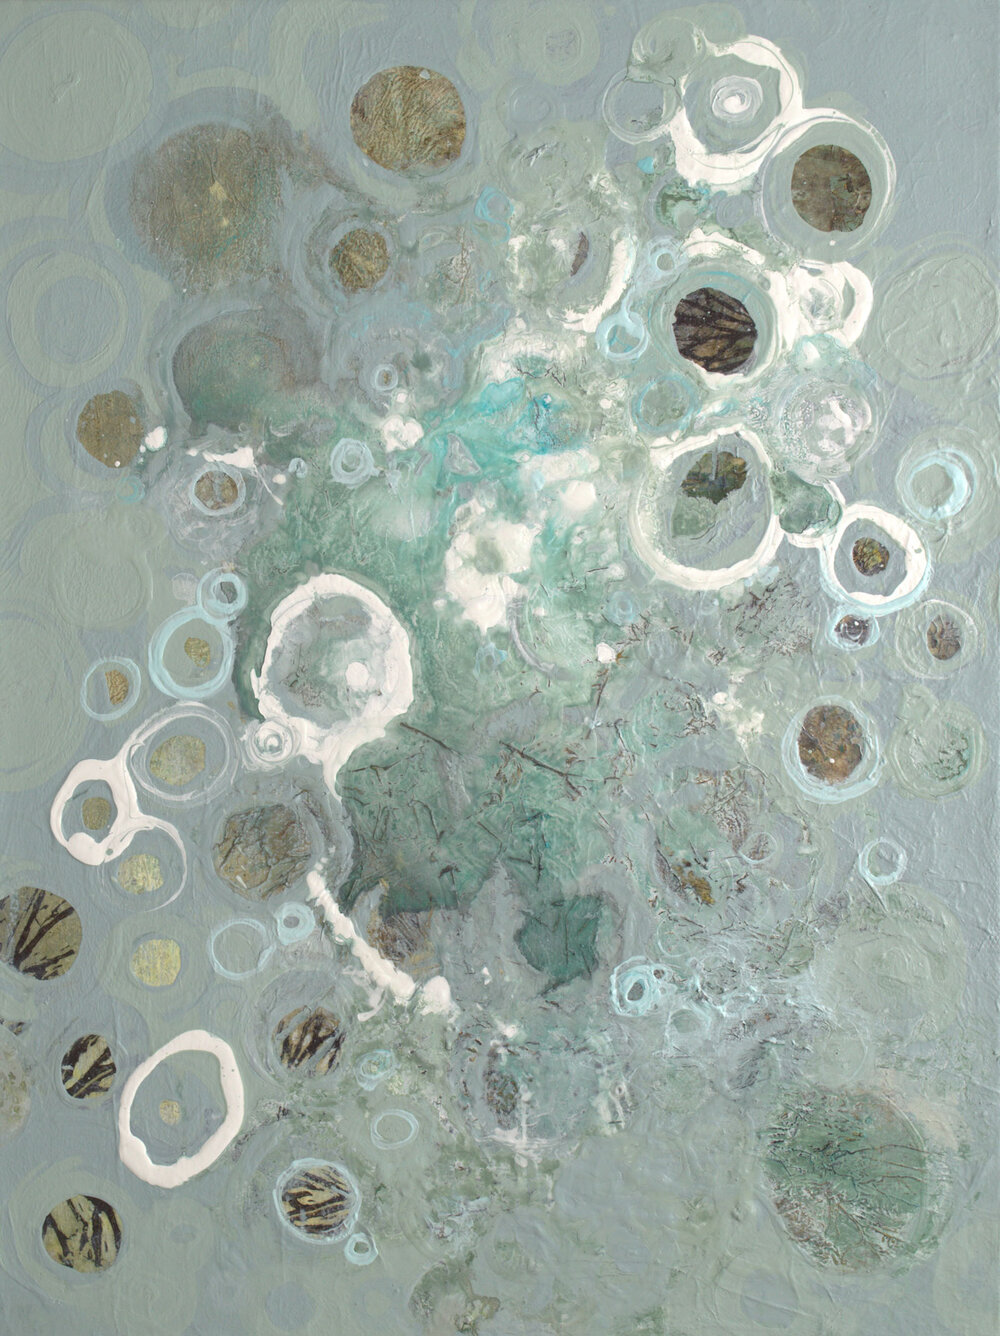 Champagne at the Shore III - 24x18 - available